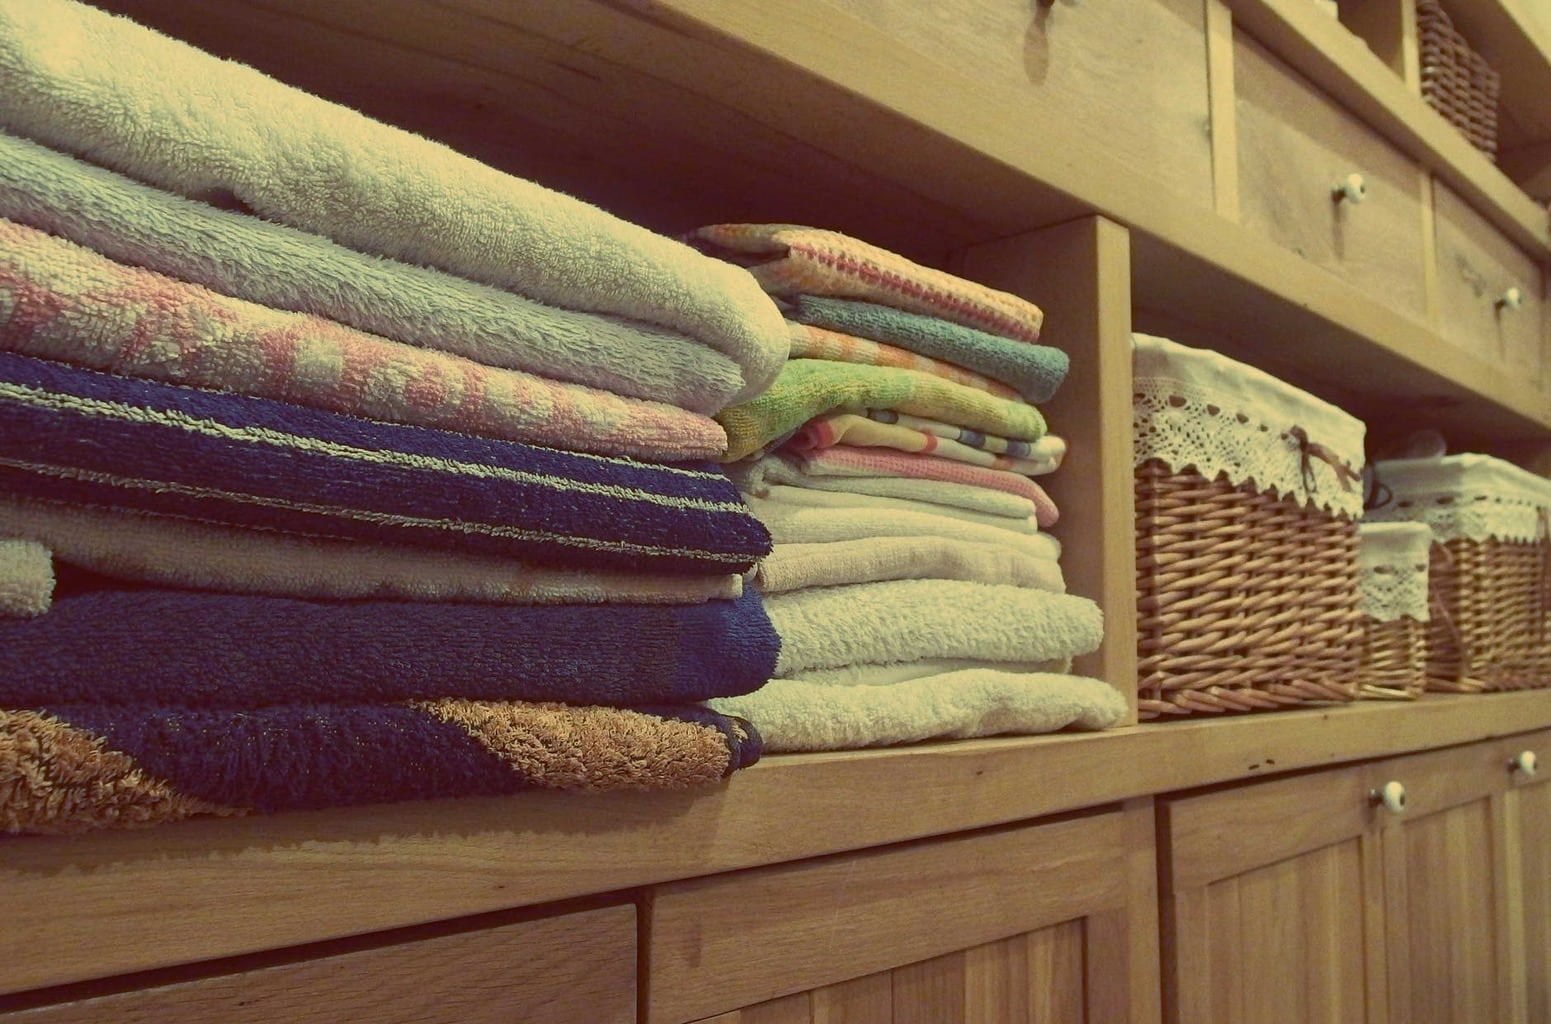 Towels nicely organized on a shelf